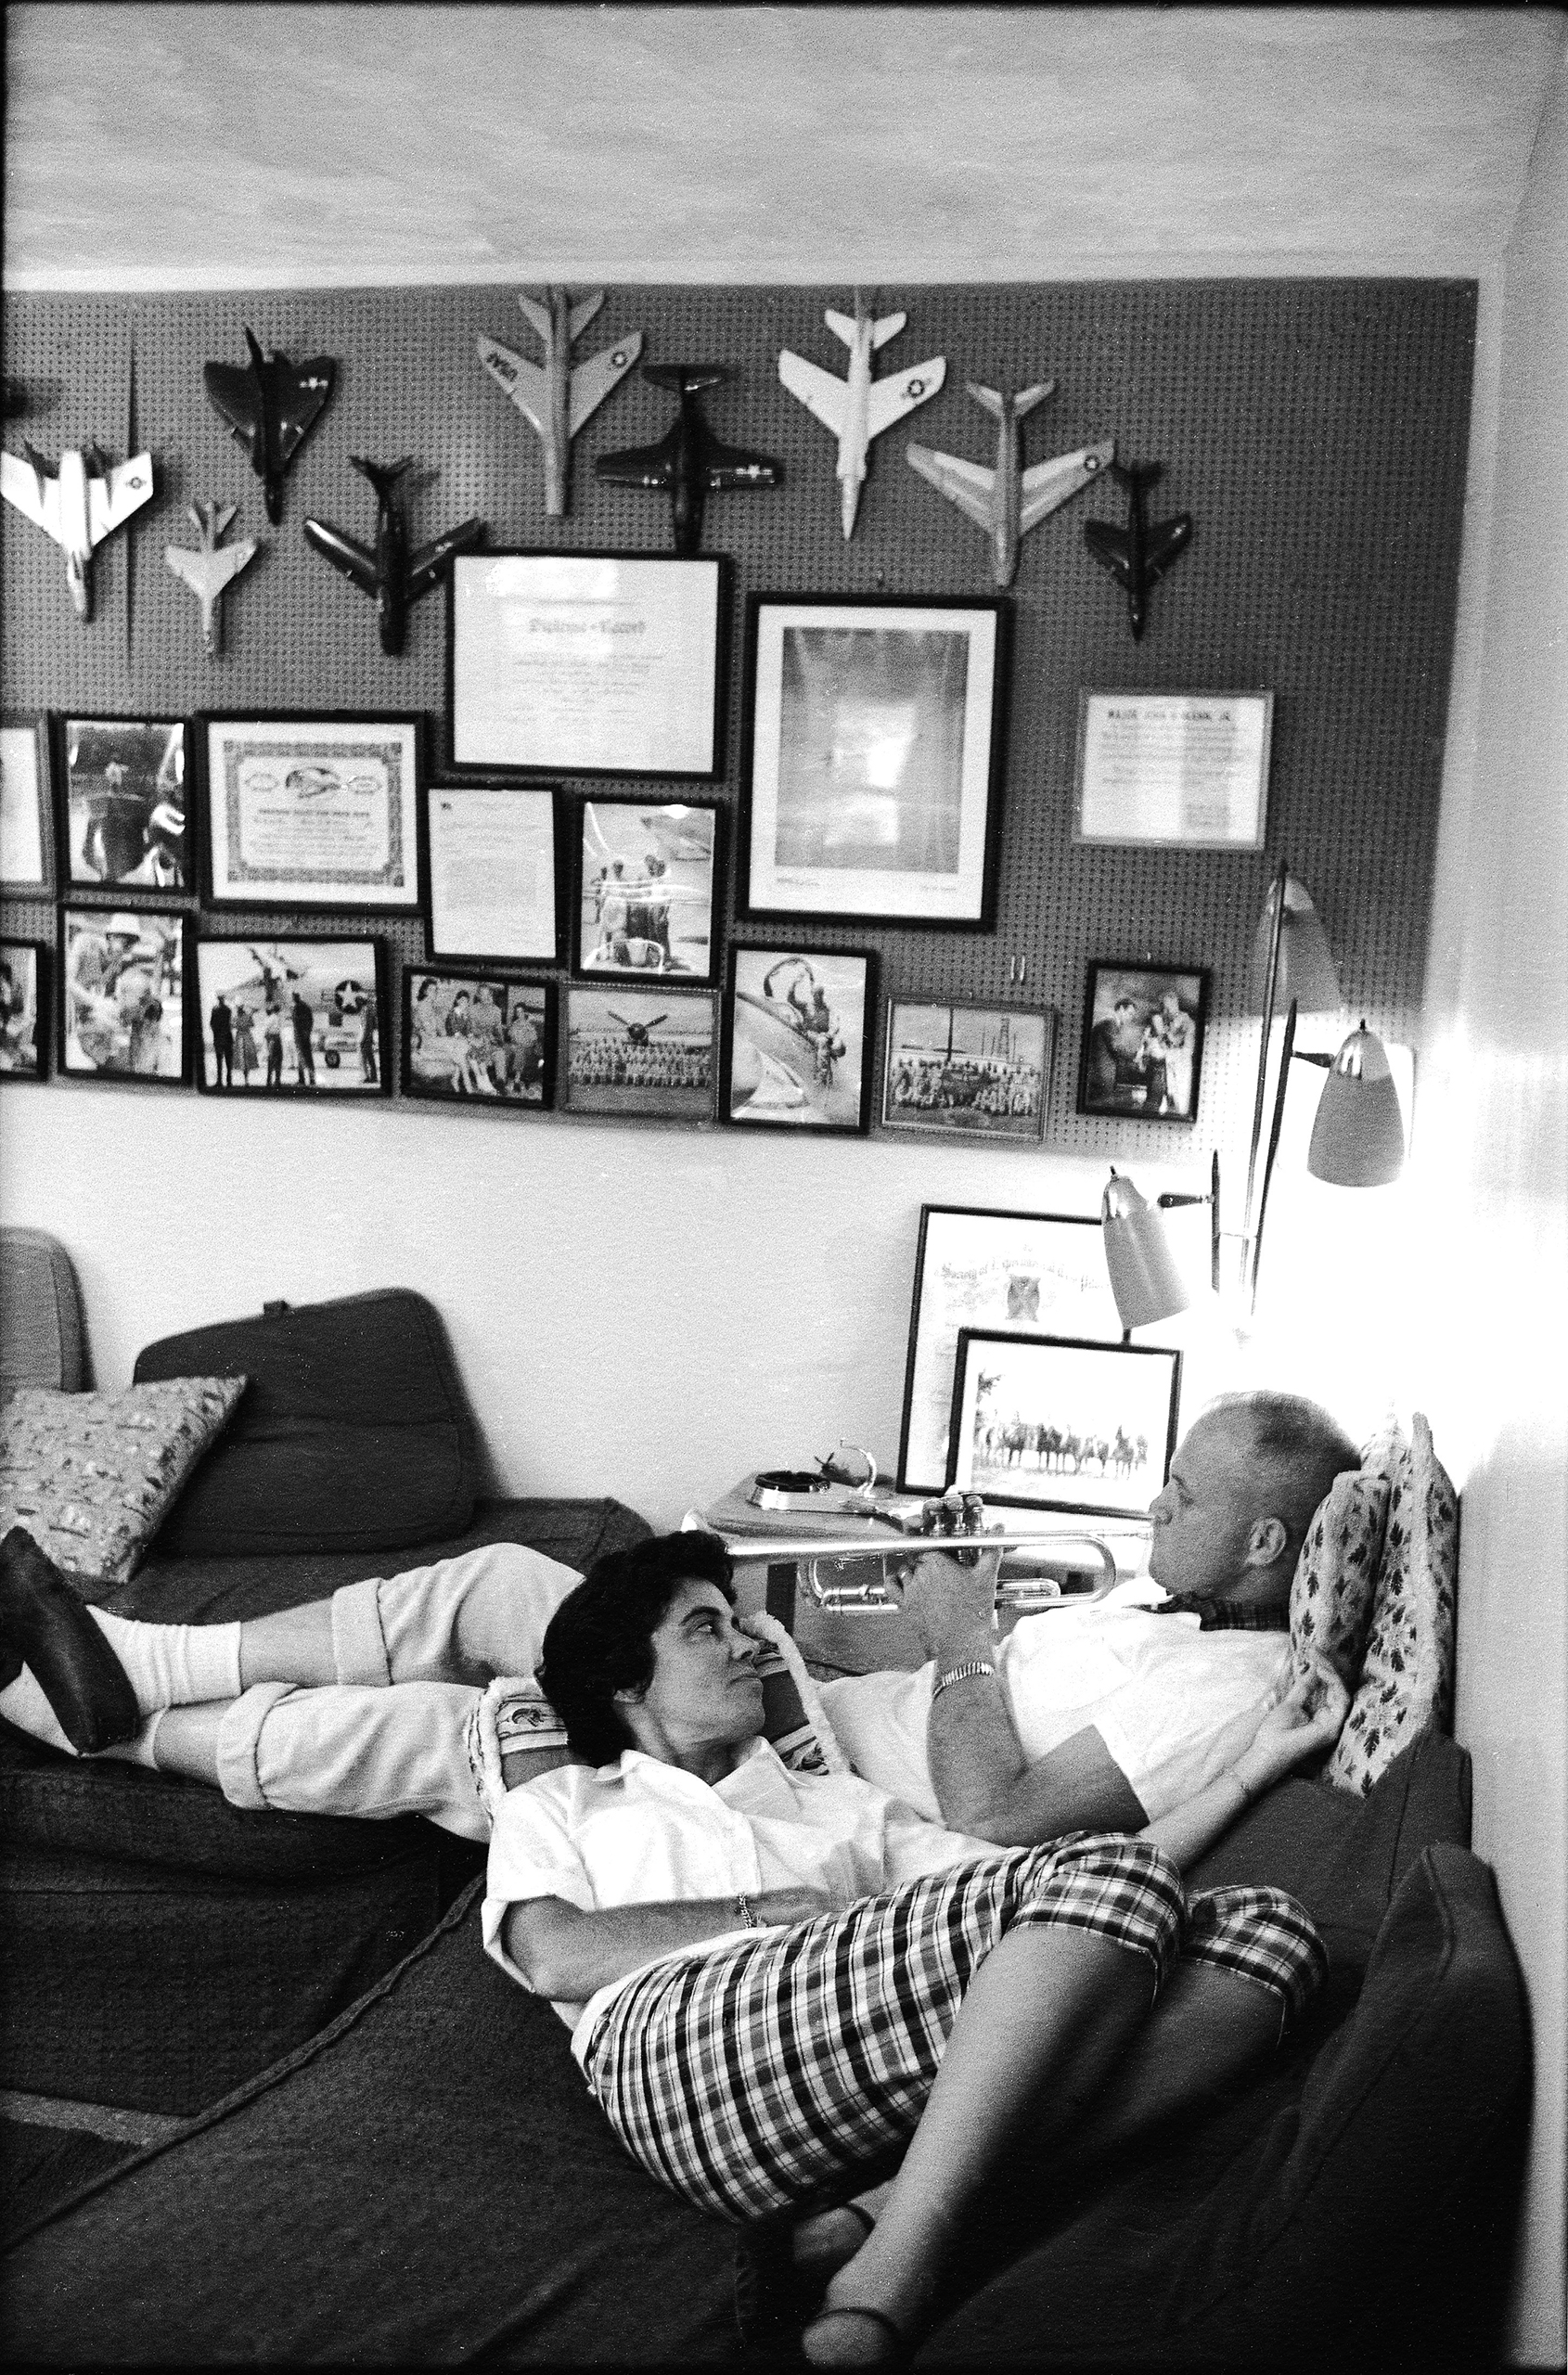 American astronaut John Glenn lies on a sofa and plays a trumpet for his wife Annie, who rests her head on a pillow on his lap, in Arlington, Va., 1961. The wall behind them holds a display of various models of jet aircraft, as well as a number of mounted photographs and certificates.